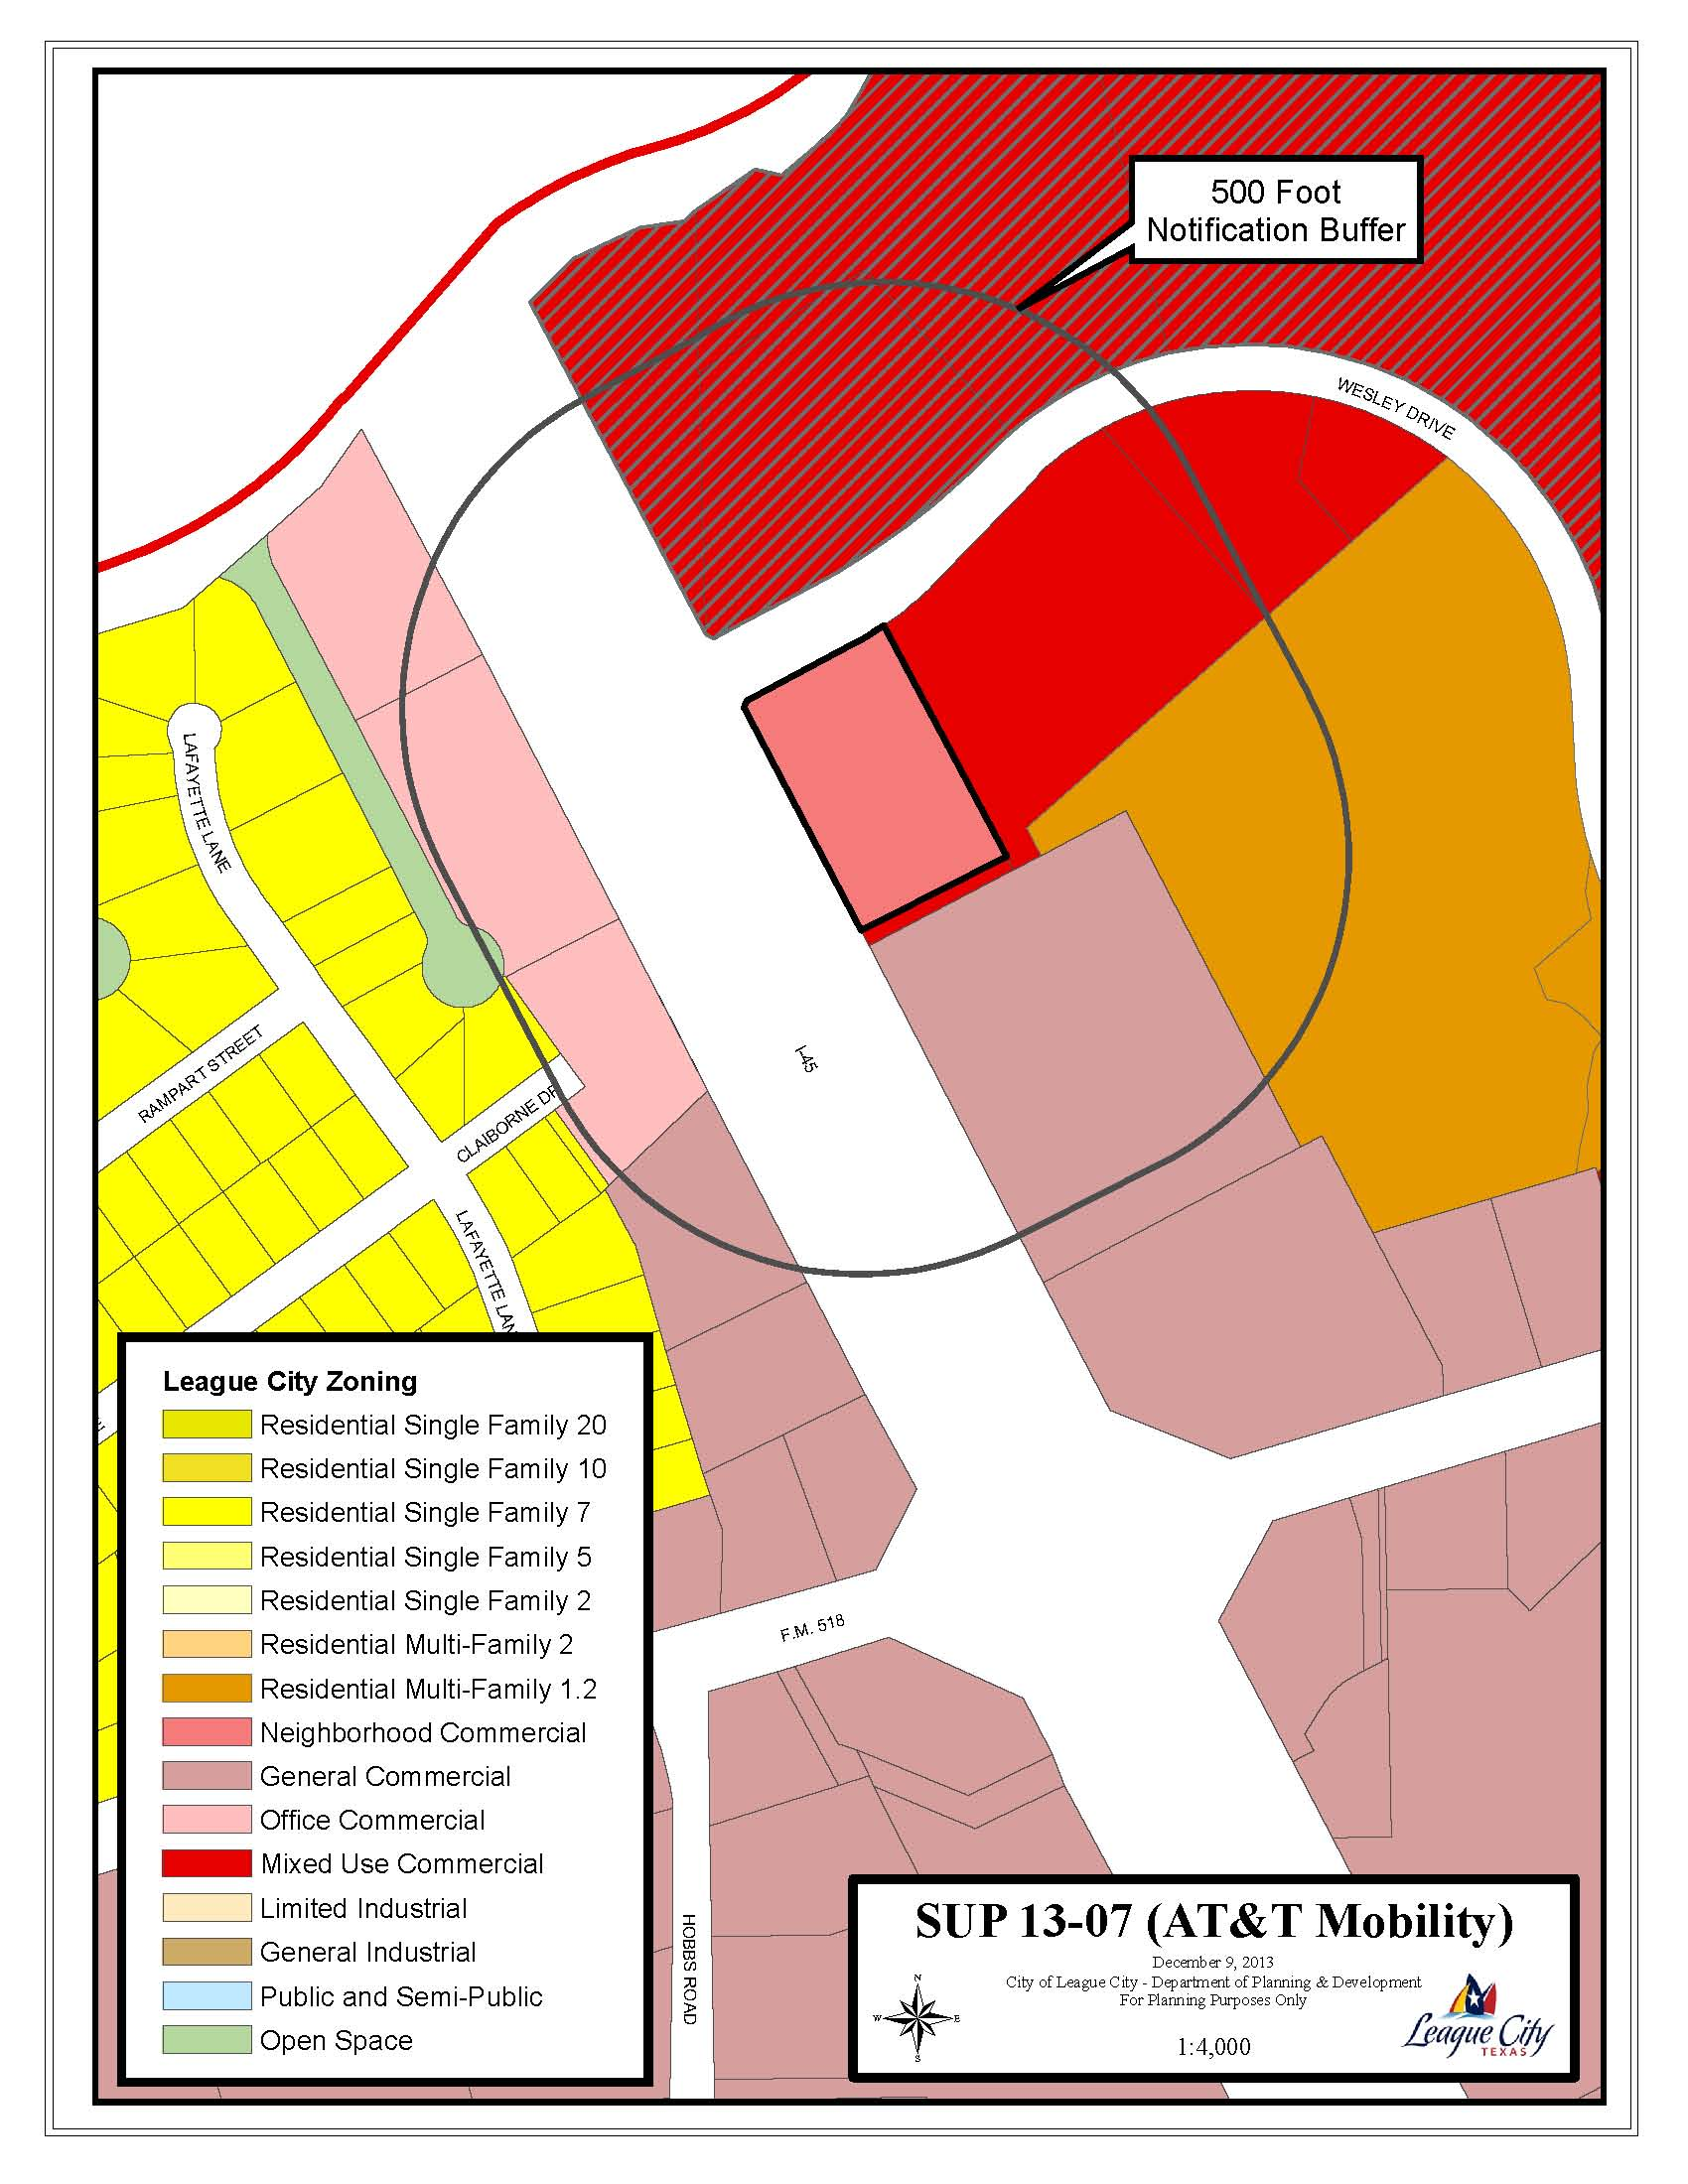 Z13-06 - SUP13-07 Zoning map